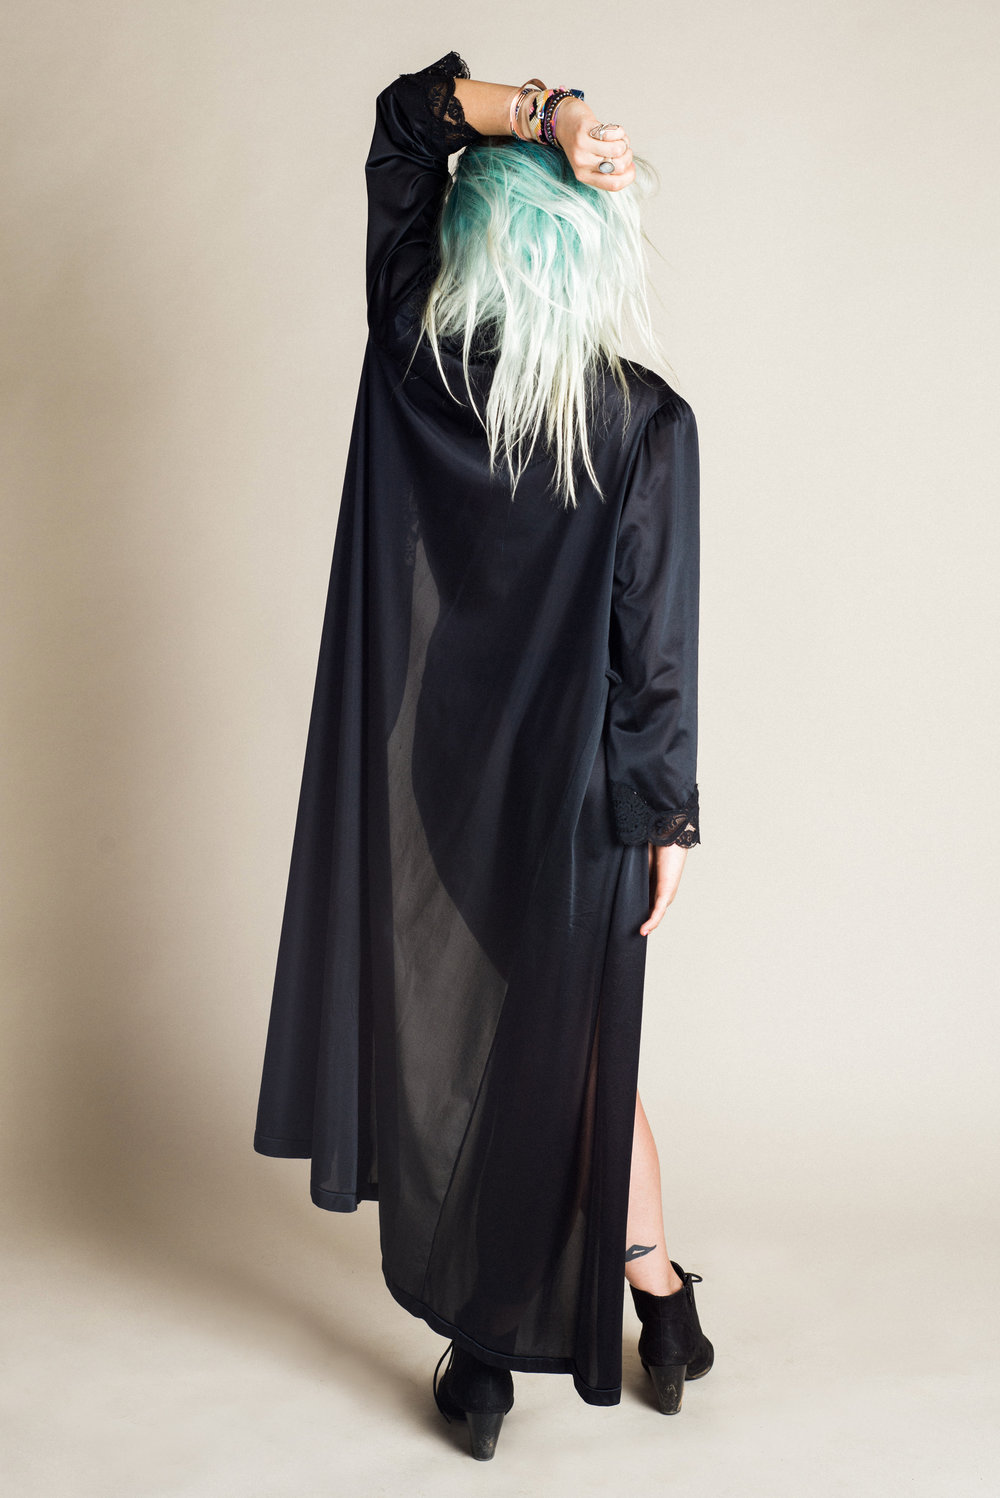 Black Robe (S-L) | Modeled by Sarah